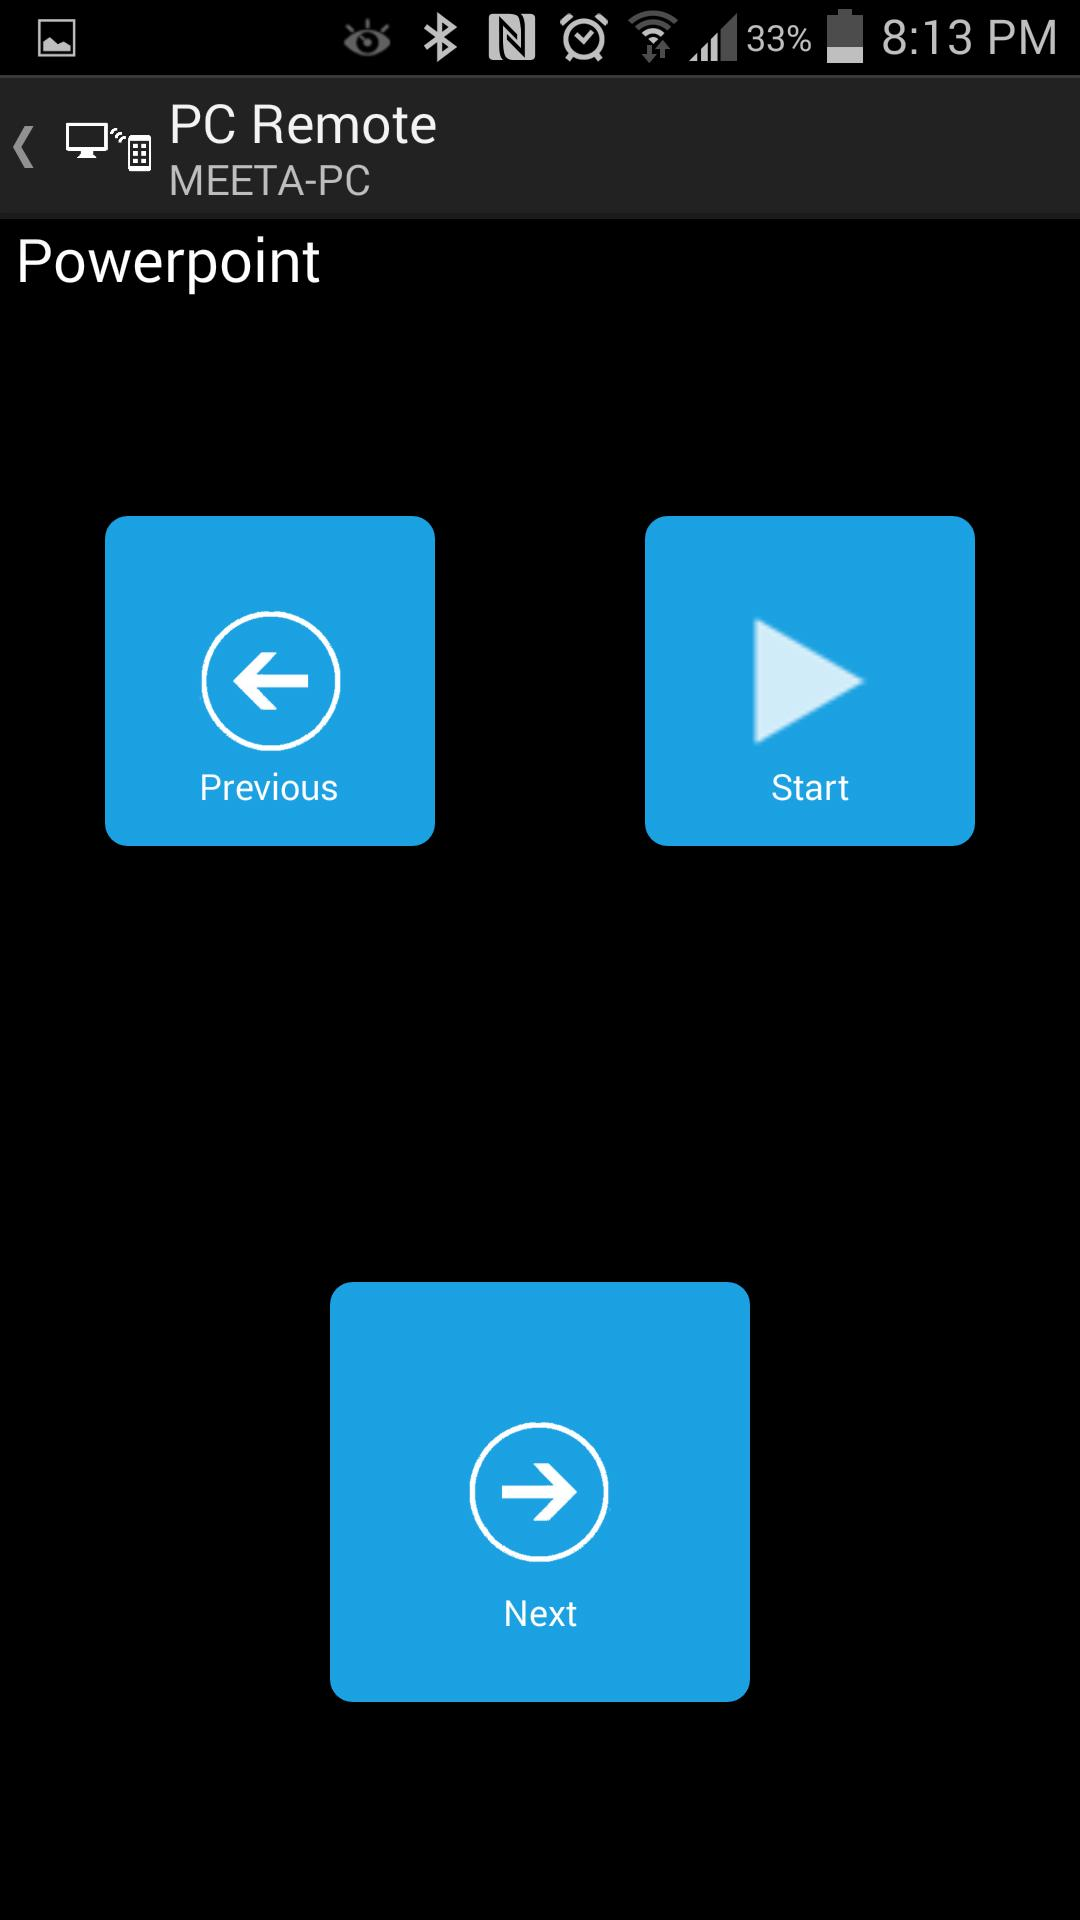 PC Remote (Beta) for Android - APK Download